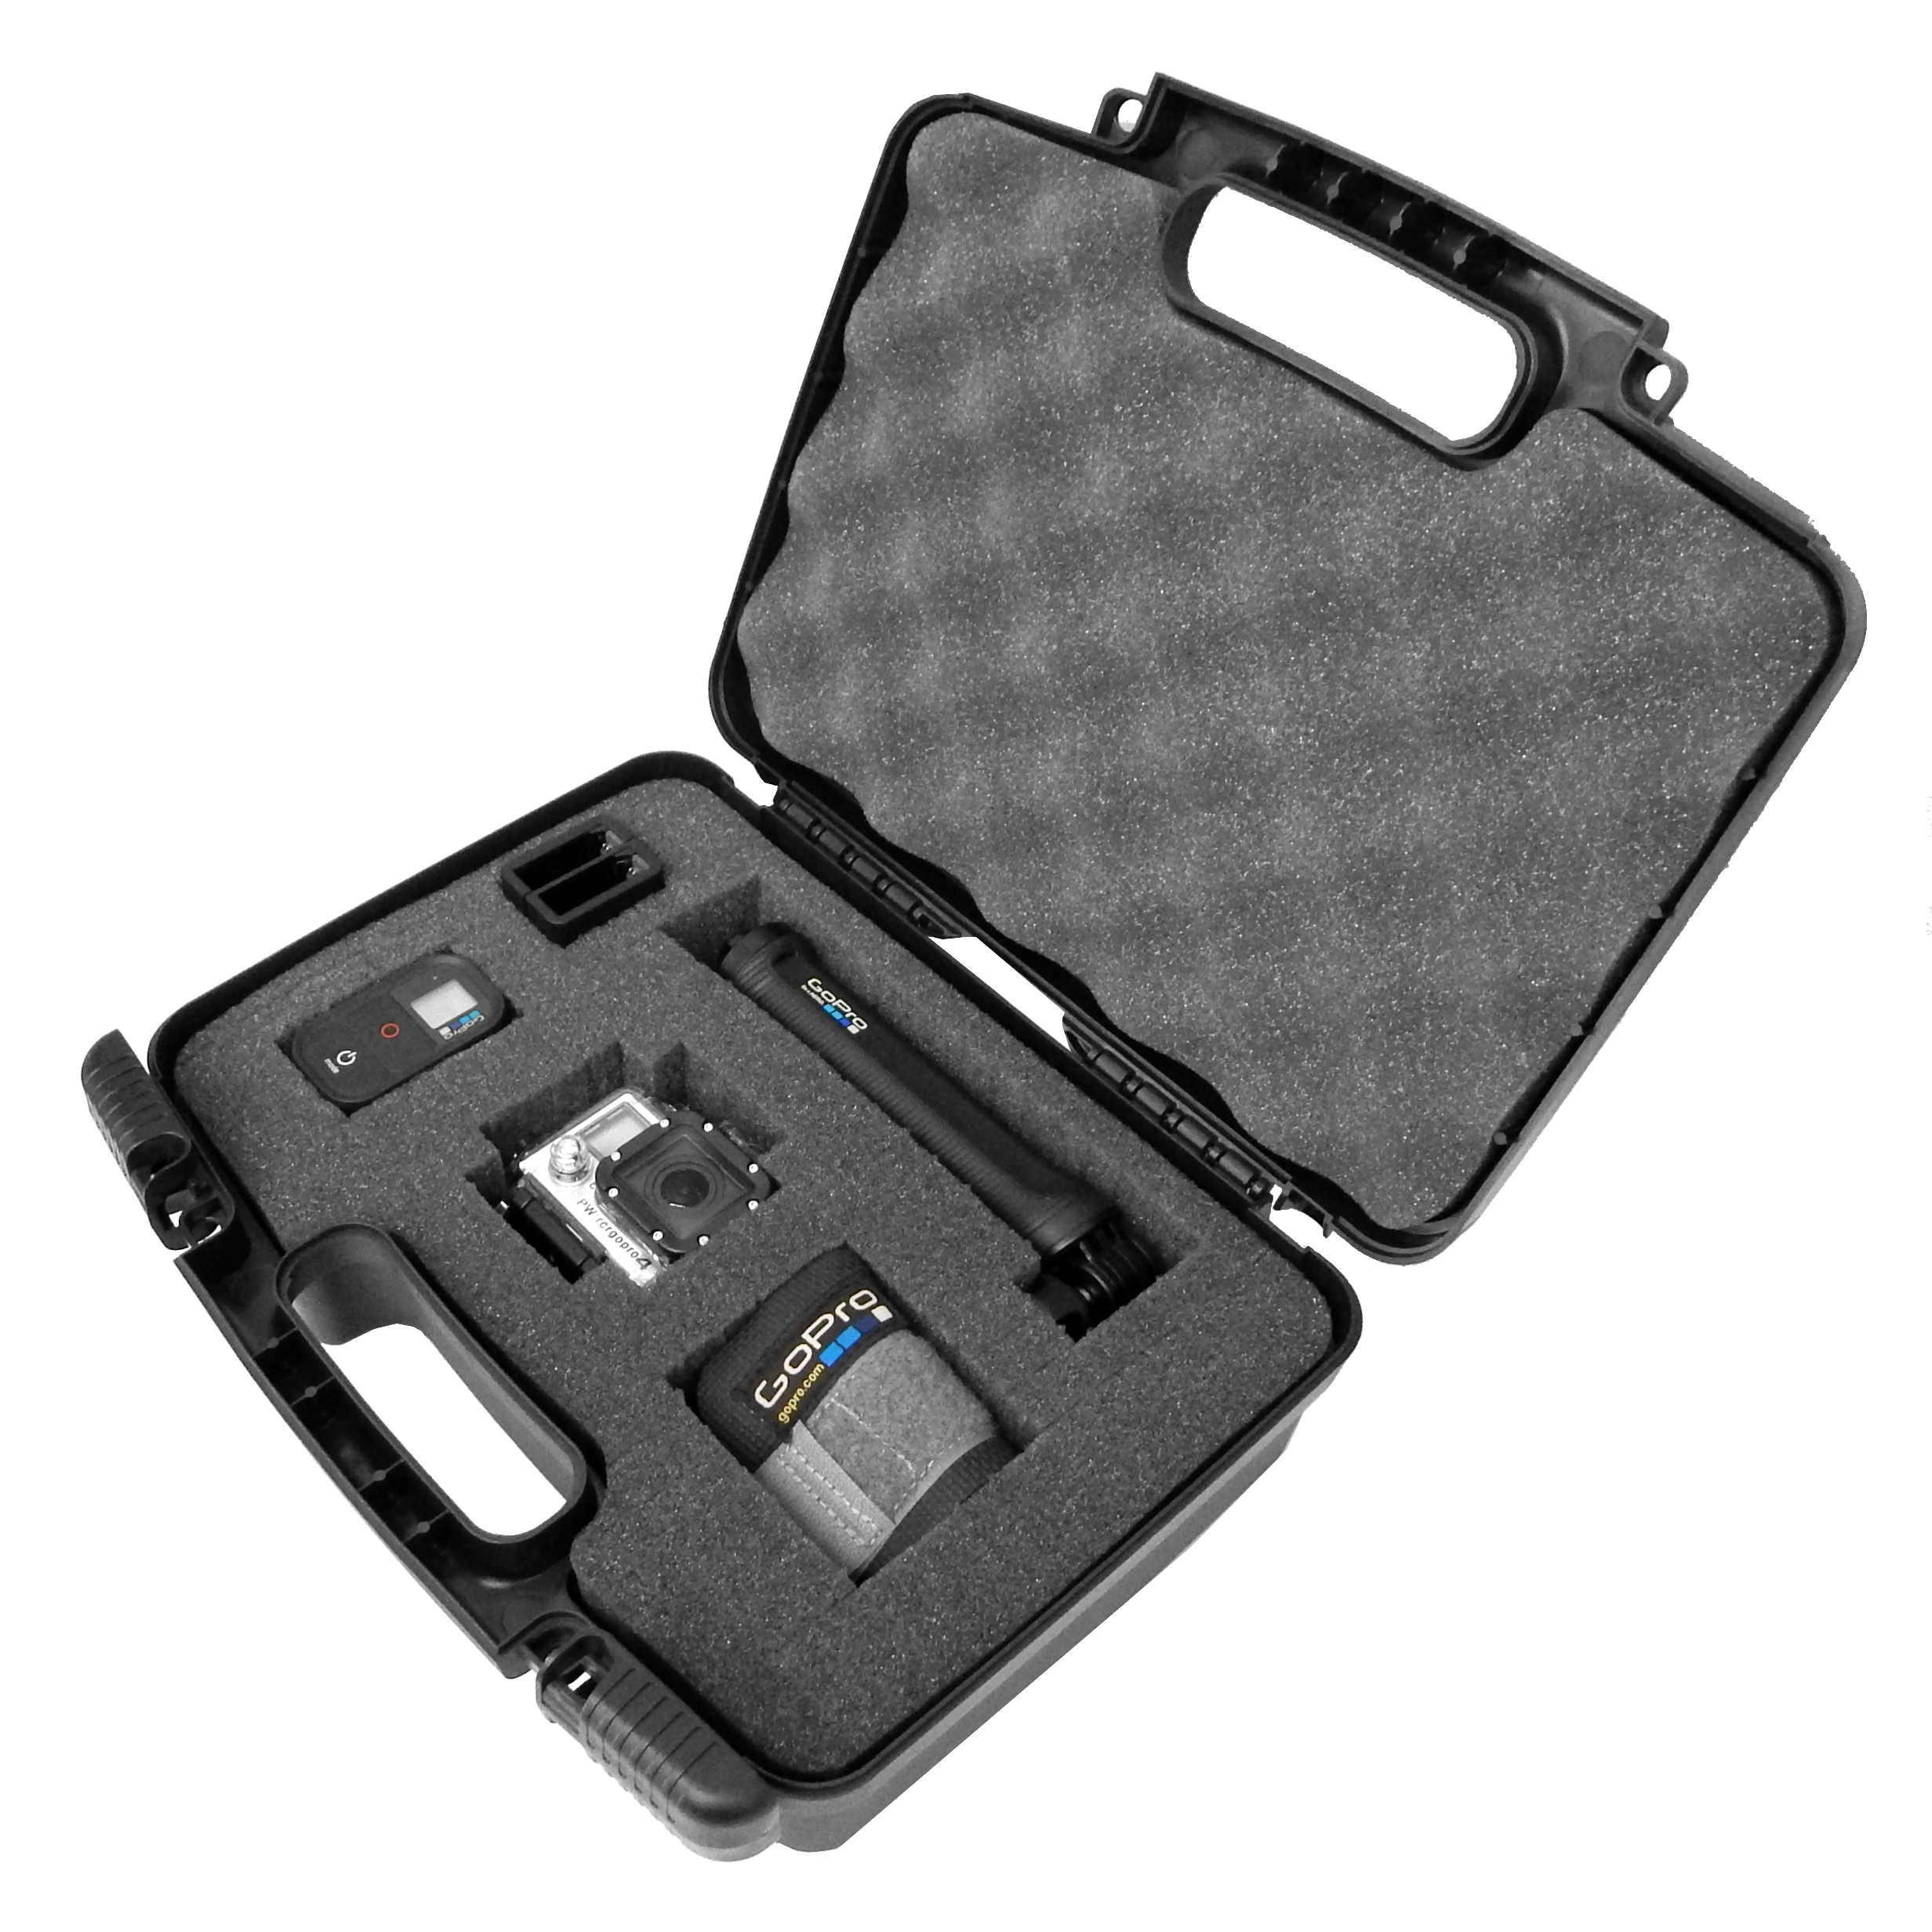 GoXTREME Hard Shell Travel and Storage Case for Sports Action Cameras and Accessories - Fits DBPOWER SJ4000 / ABLEGRID SJ5000/ Spy Tec GIT2 / ASX ActionPro-X / Xiaomi Yi / Stealth 2 / SJCAM SJ4000